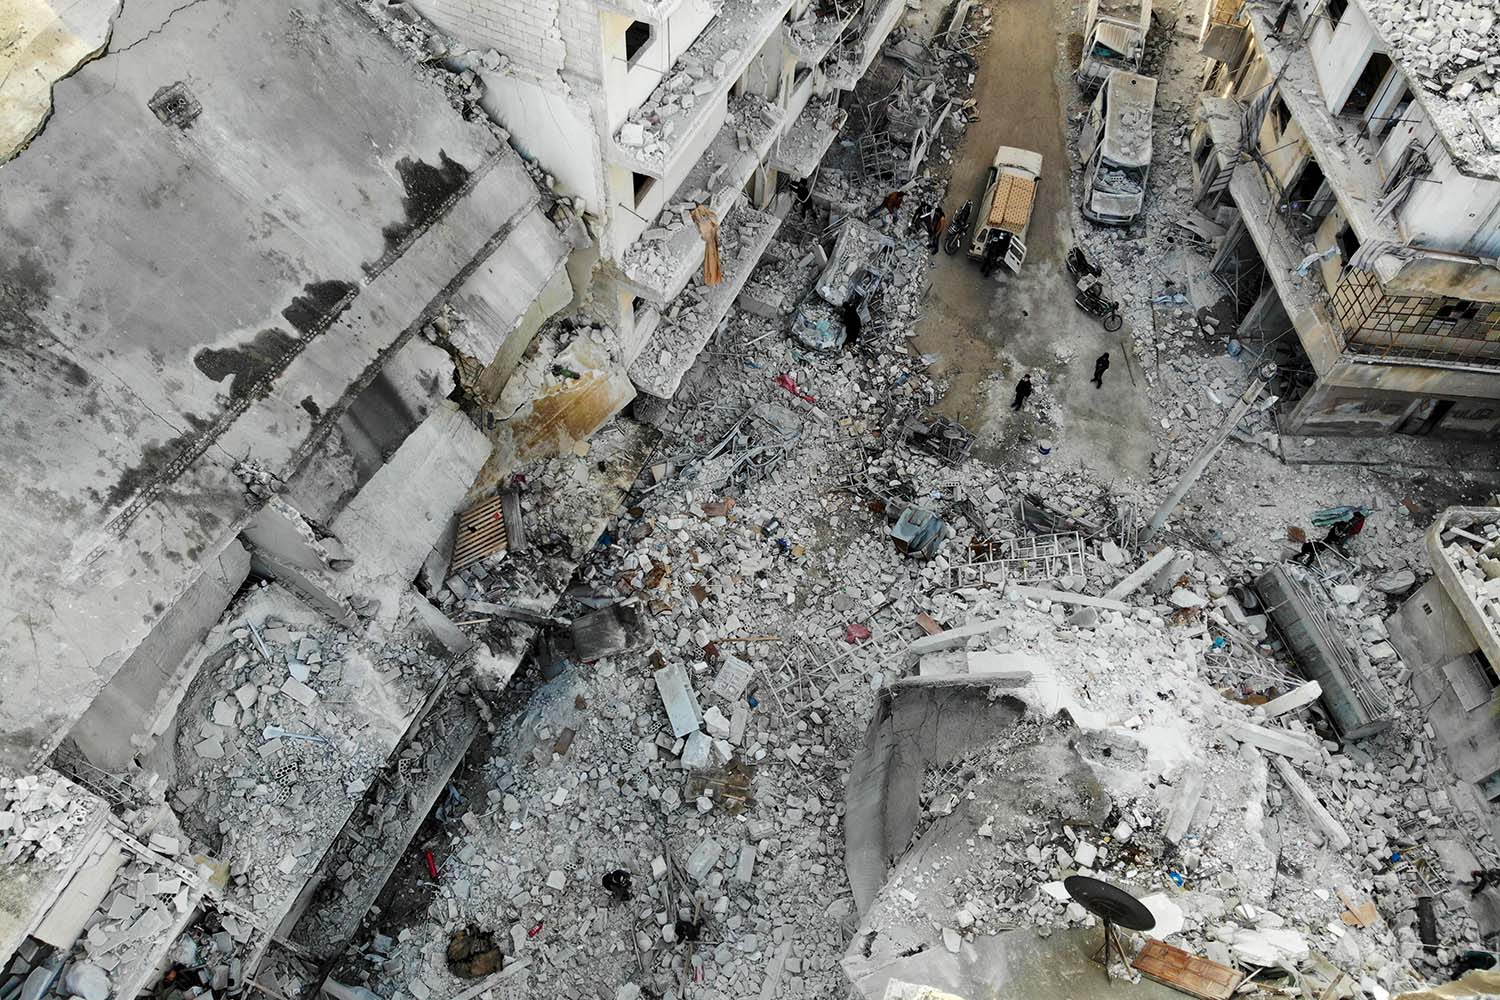 An aerial view shows the rubble and debris at the site of reported airstrikes on the rebel-held town of Ariha in the northern countryside of Syria's Idlib province on Jan. 30. OMAR HAJ KADOUR/AFP via Getty Images